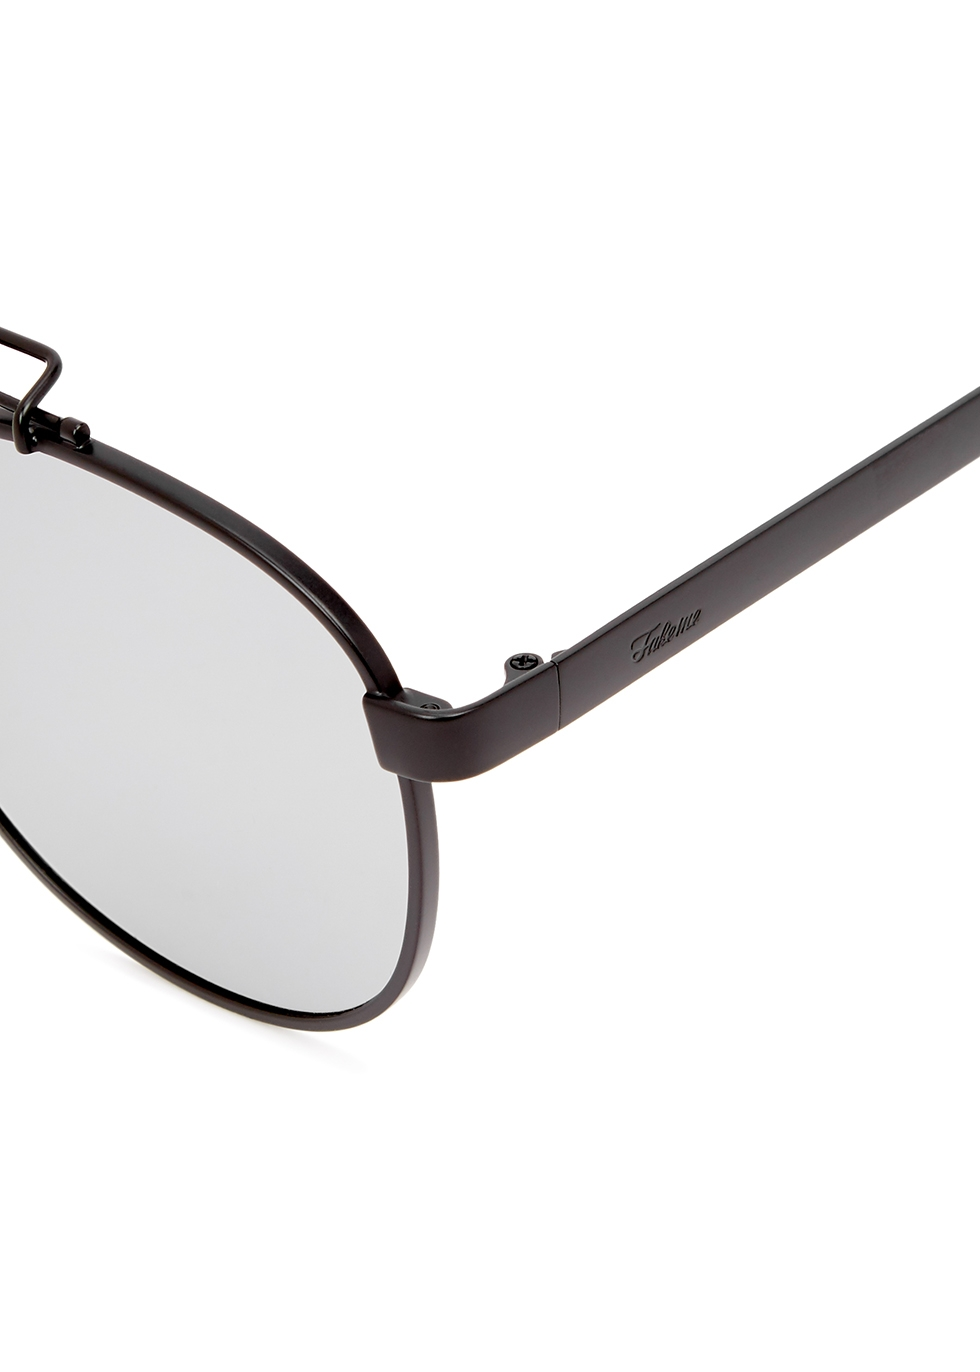 Ozzy black mirrored oval-frame sunglasses - FAKE ME